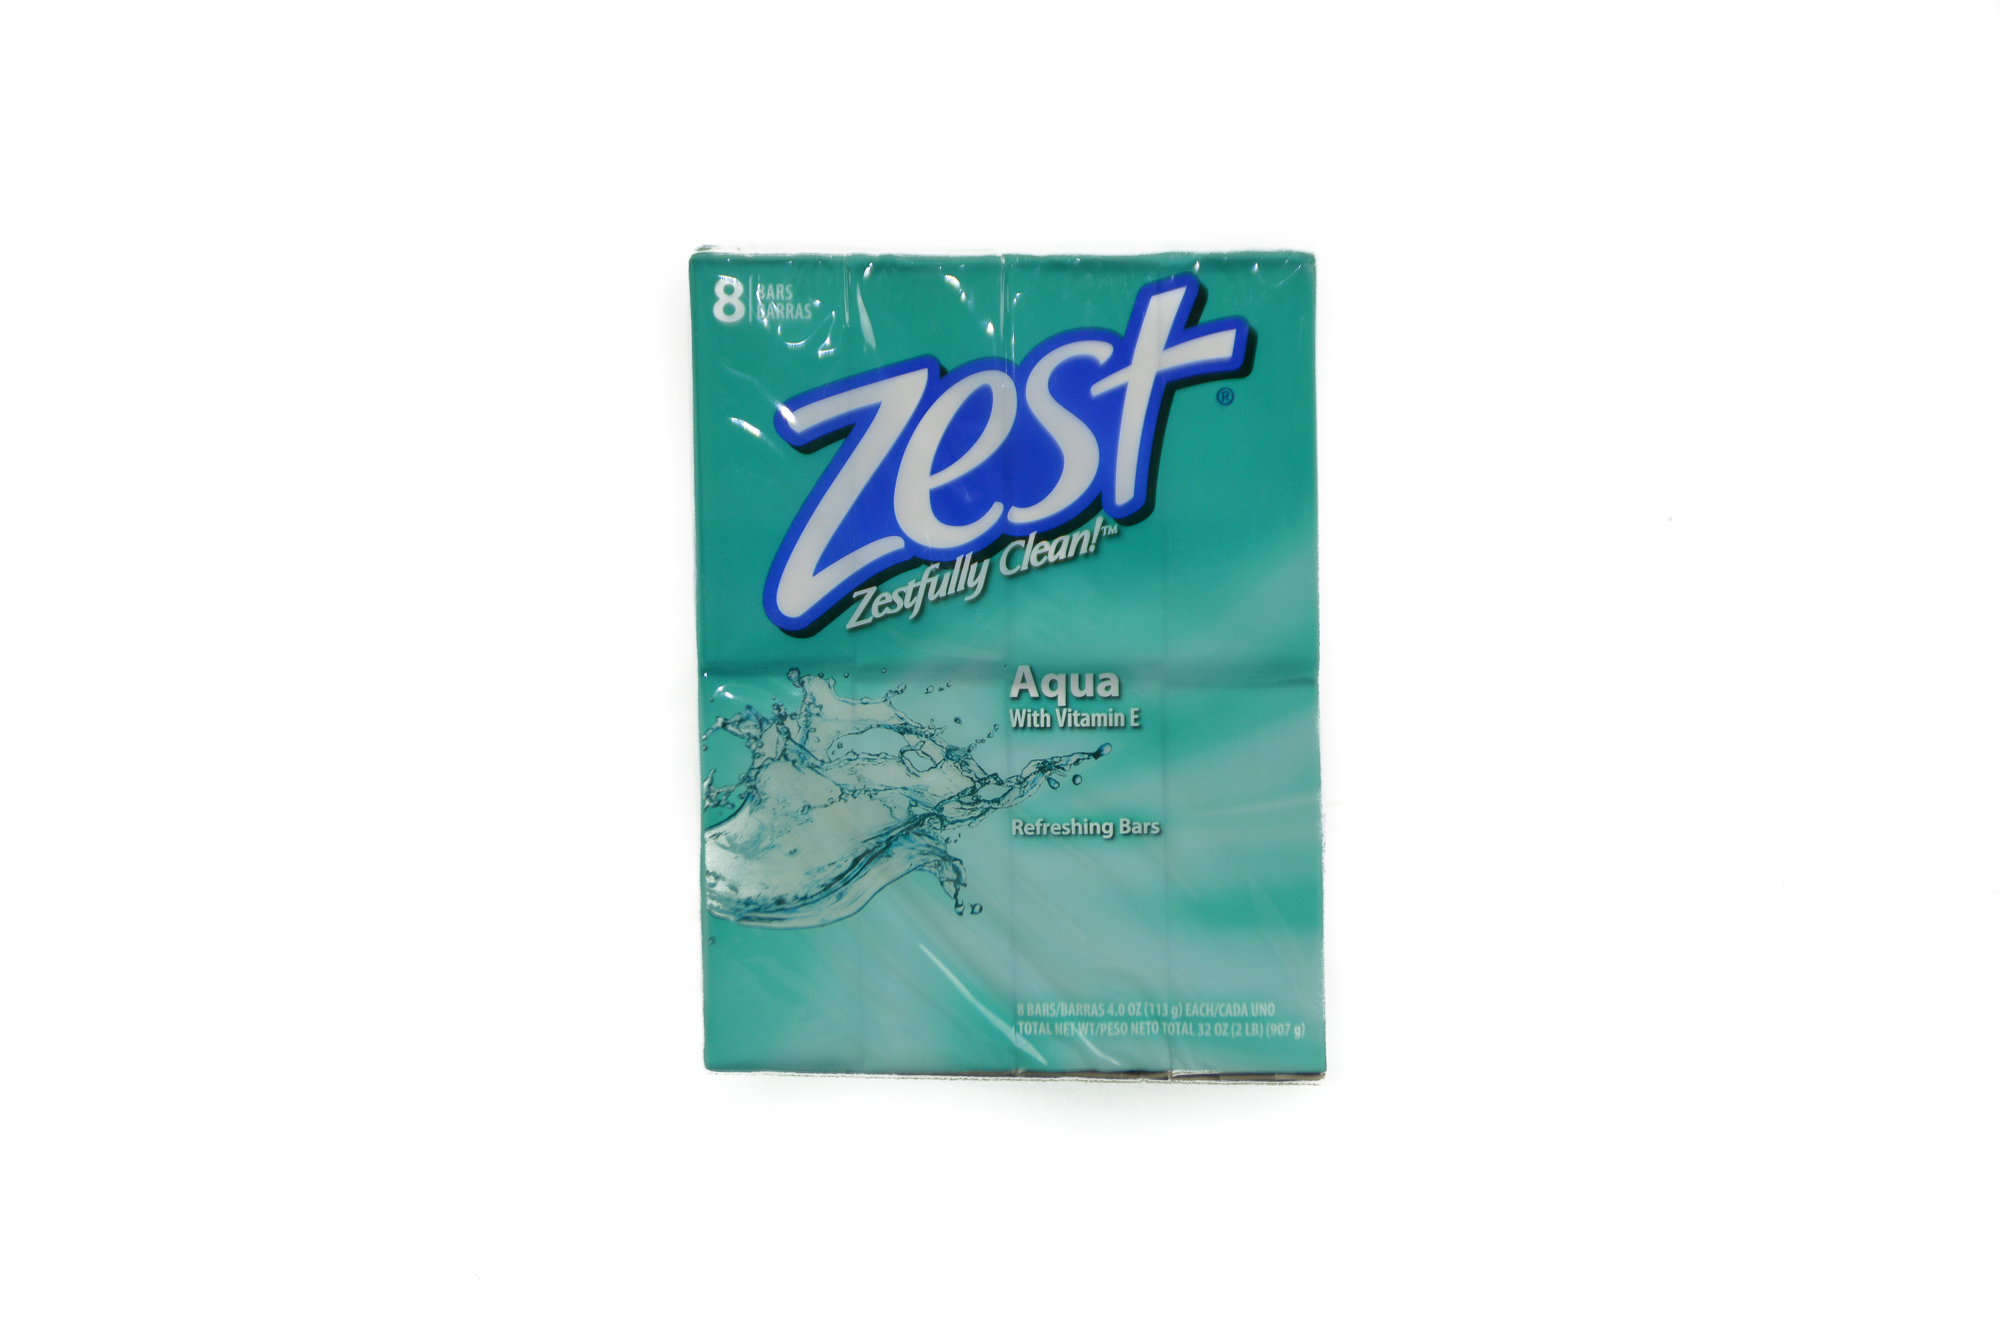 Zest Soap Pack (8 bars x 3.75 Oz)